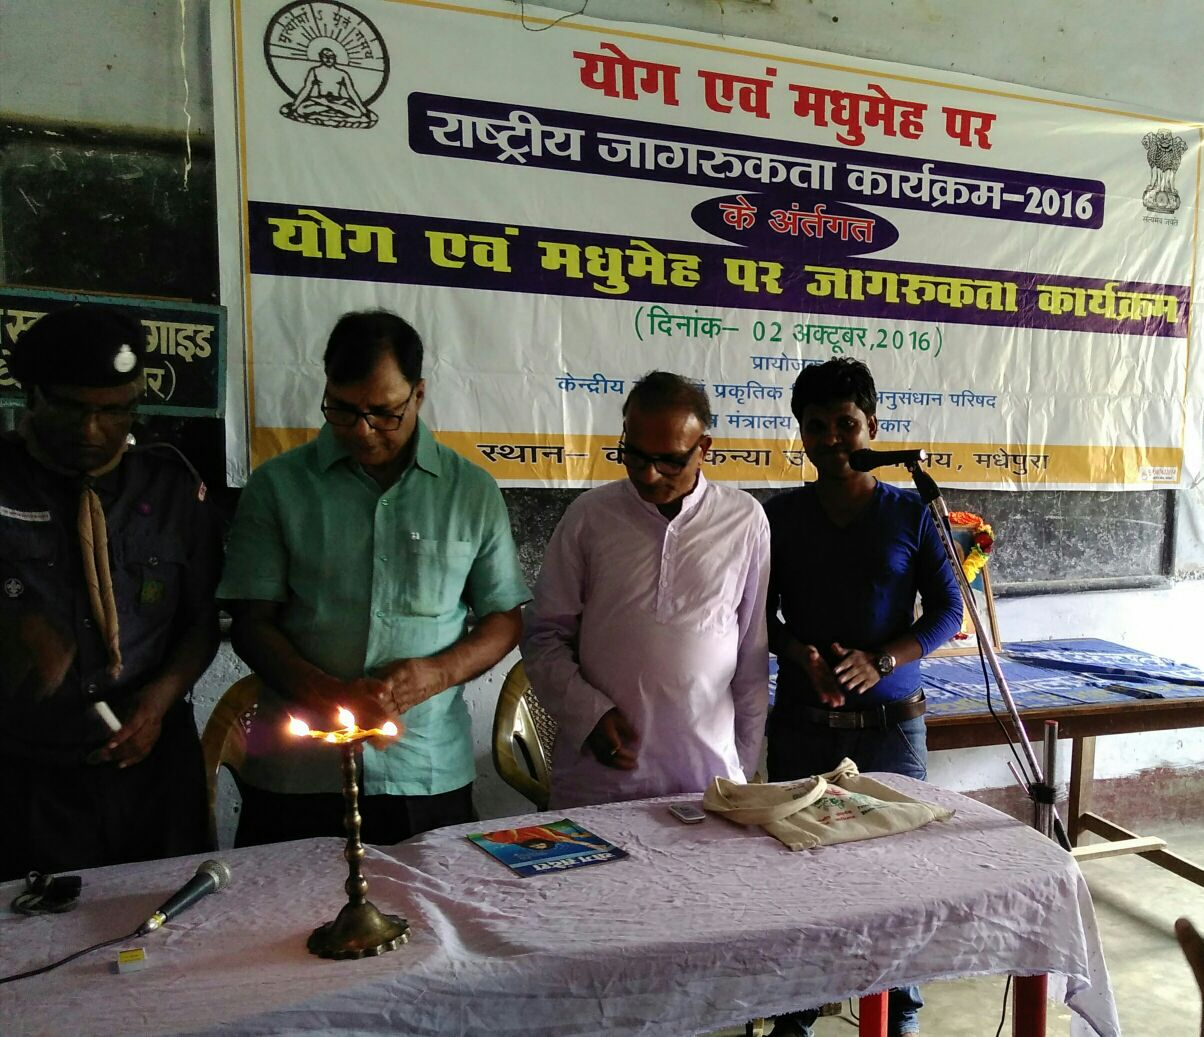 Dr.Madhepuri inaugurating the Yog & Diabetes Programe of Patanjali arranged to pay Shrandhanjali to Mahatma Gandhi & Shastrijee in presence of Scout & Guide Aayukta Jaikrishna Yadav, Dr.Nandkishore and Prof.Reeta Kumari etc. at Keshav Kanya Hall, Madhepura.